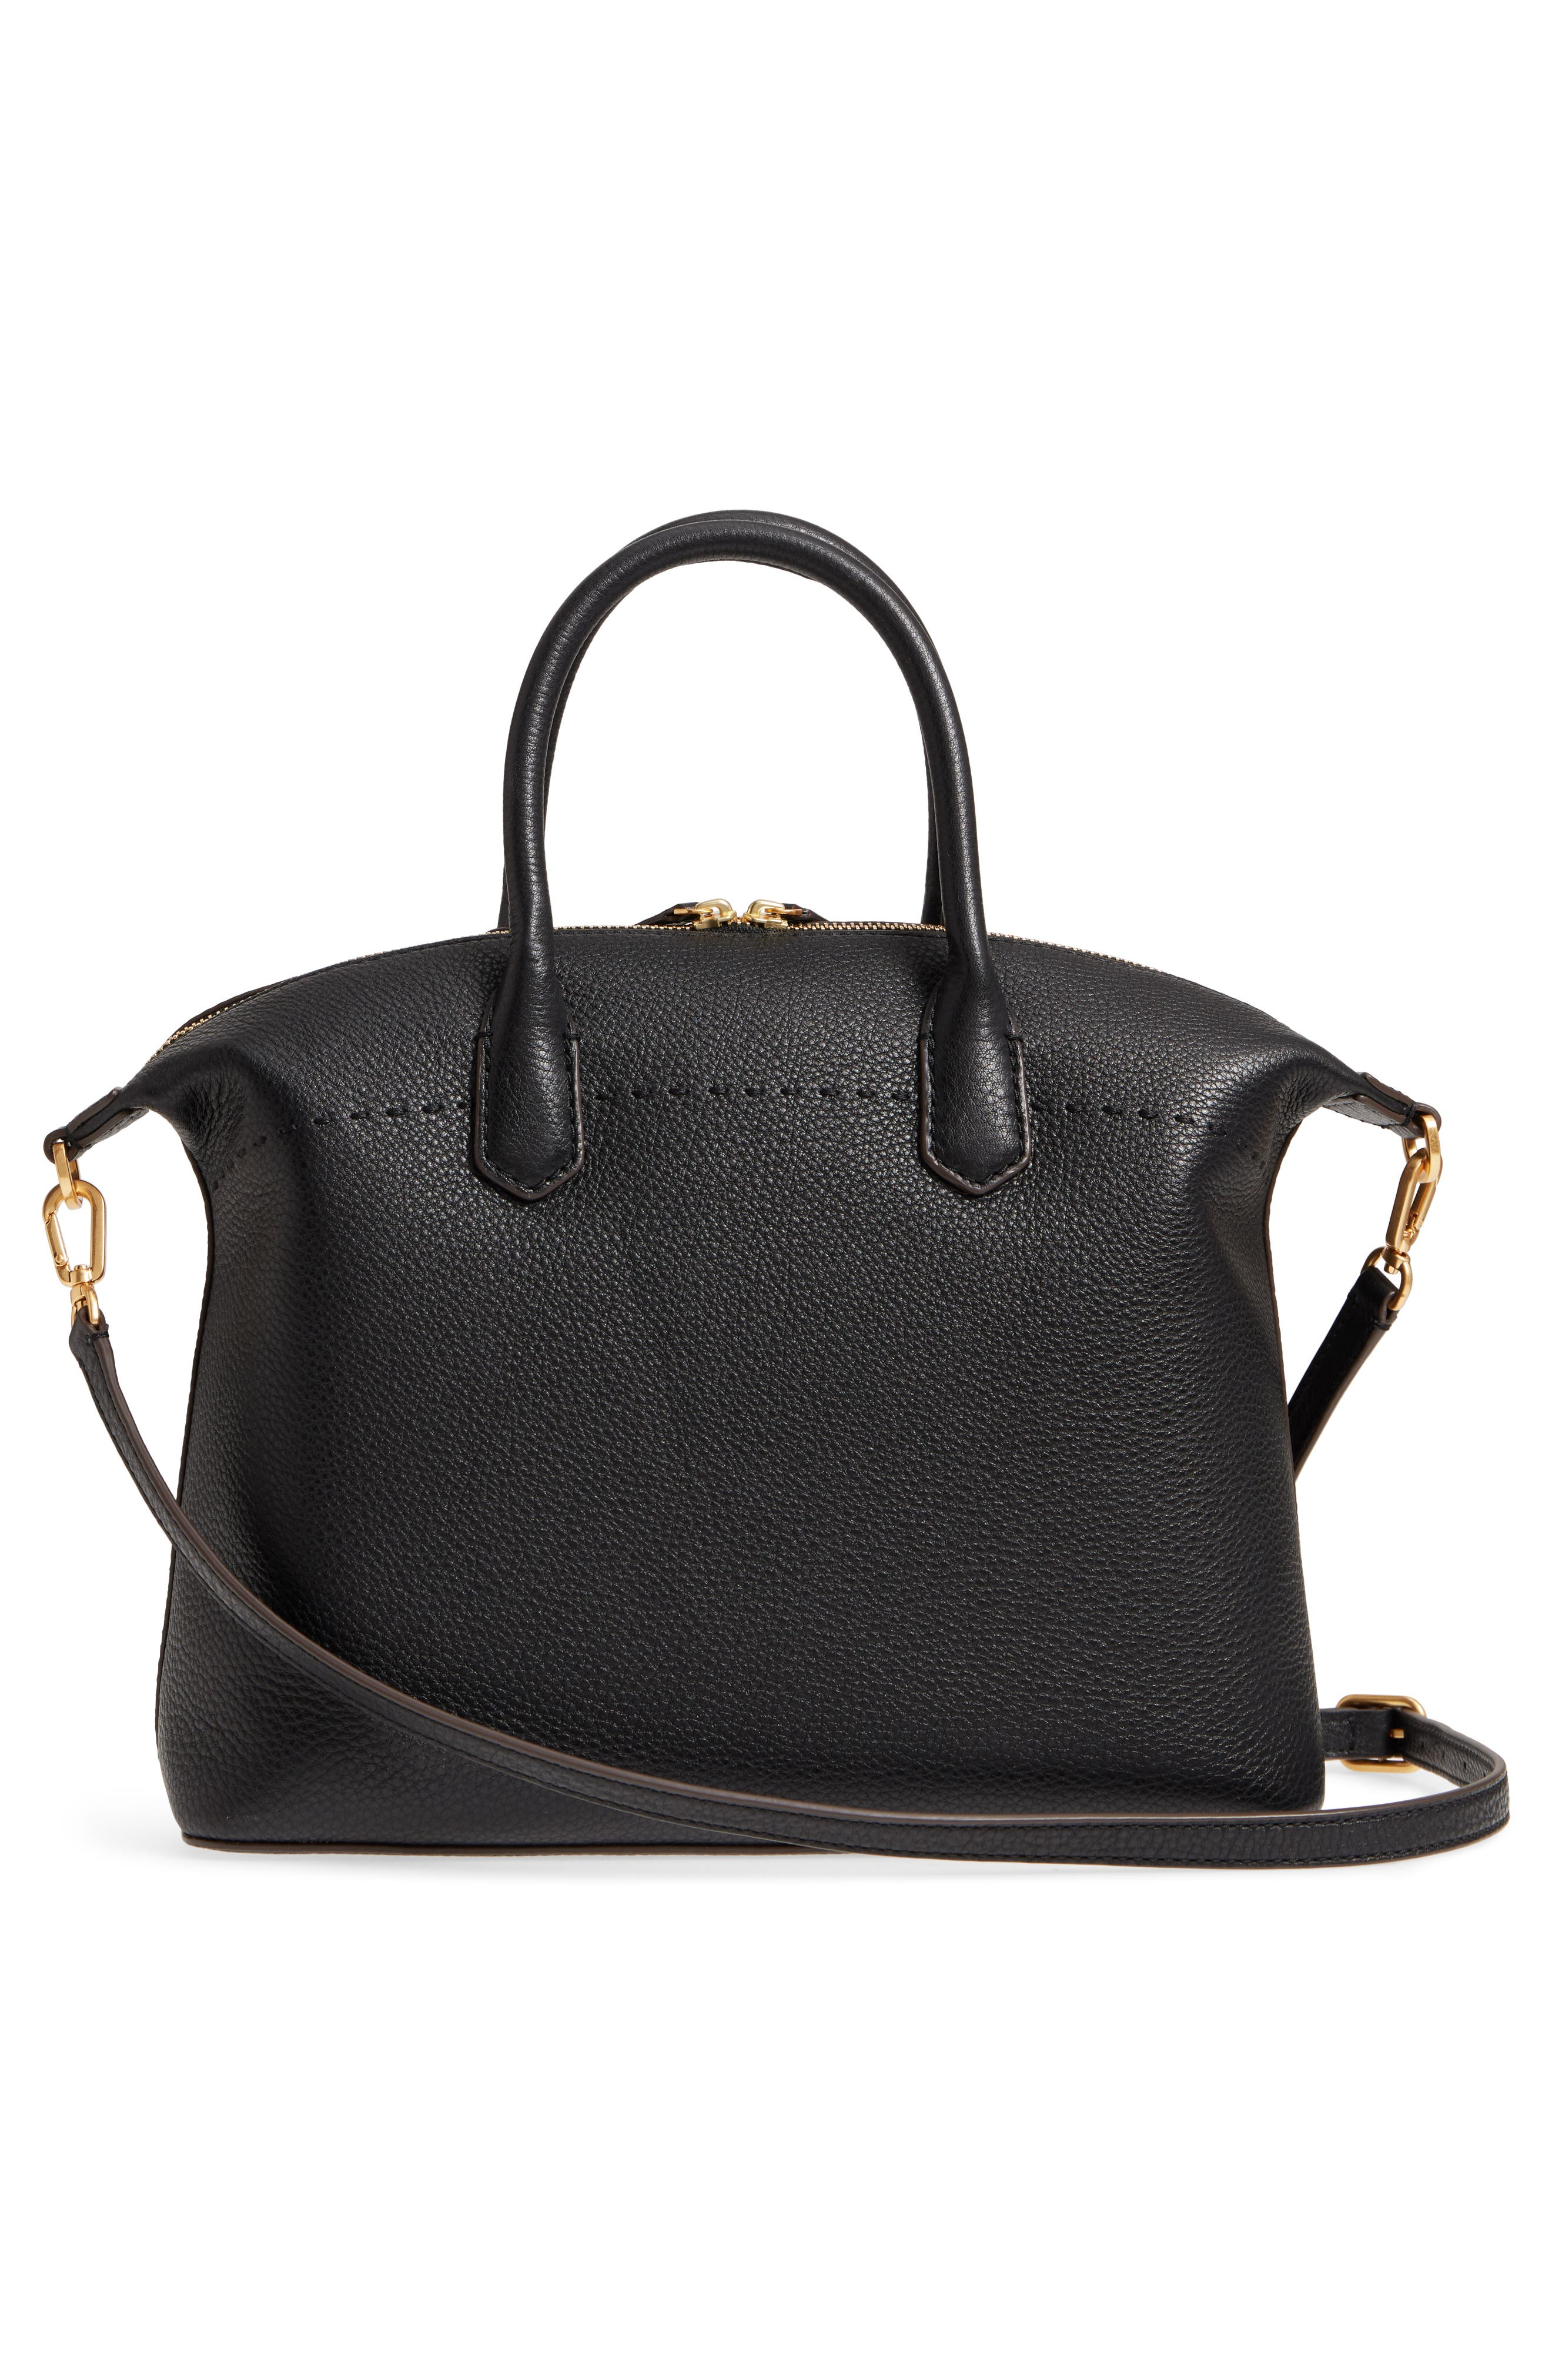 TORY BURCH,                             McGraw Slouchy Leather Satchel,                             Alternate thumbnail 3, color,                             BLACK